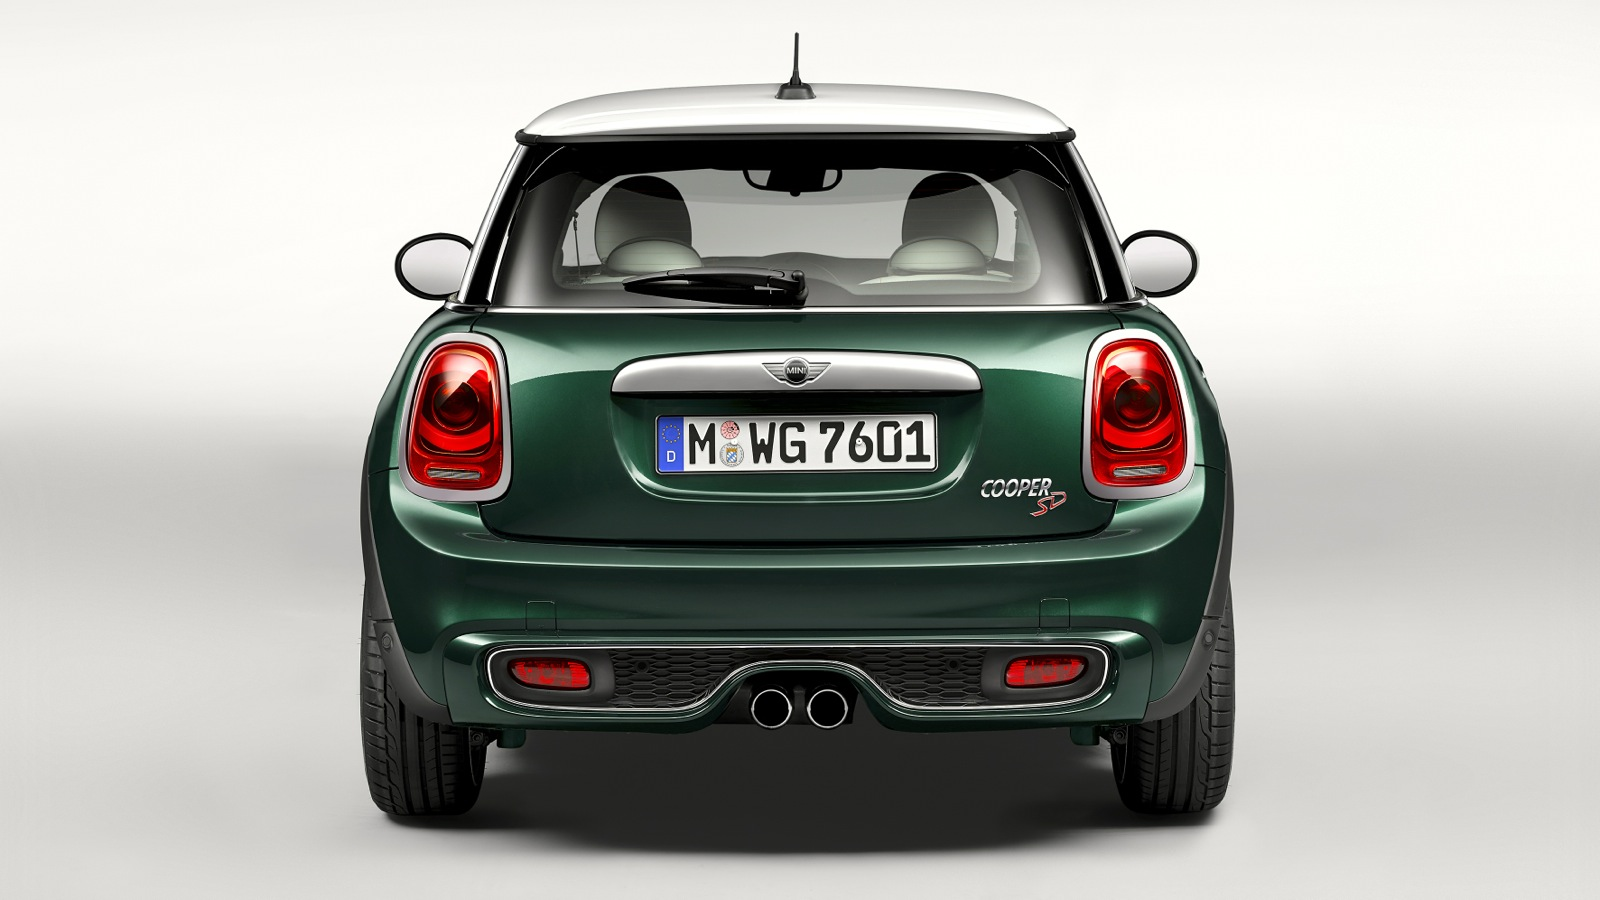 Mini Cooper Sd Revealed As Brand S Quickest Diesel Model